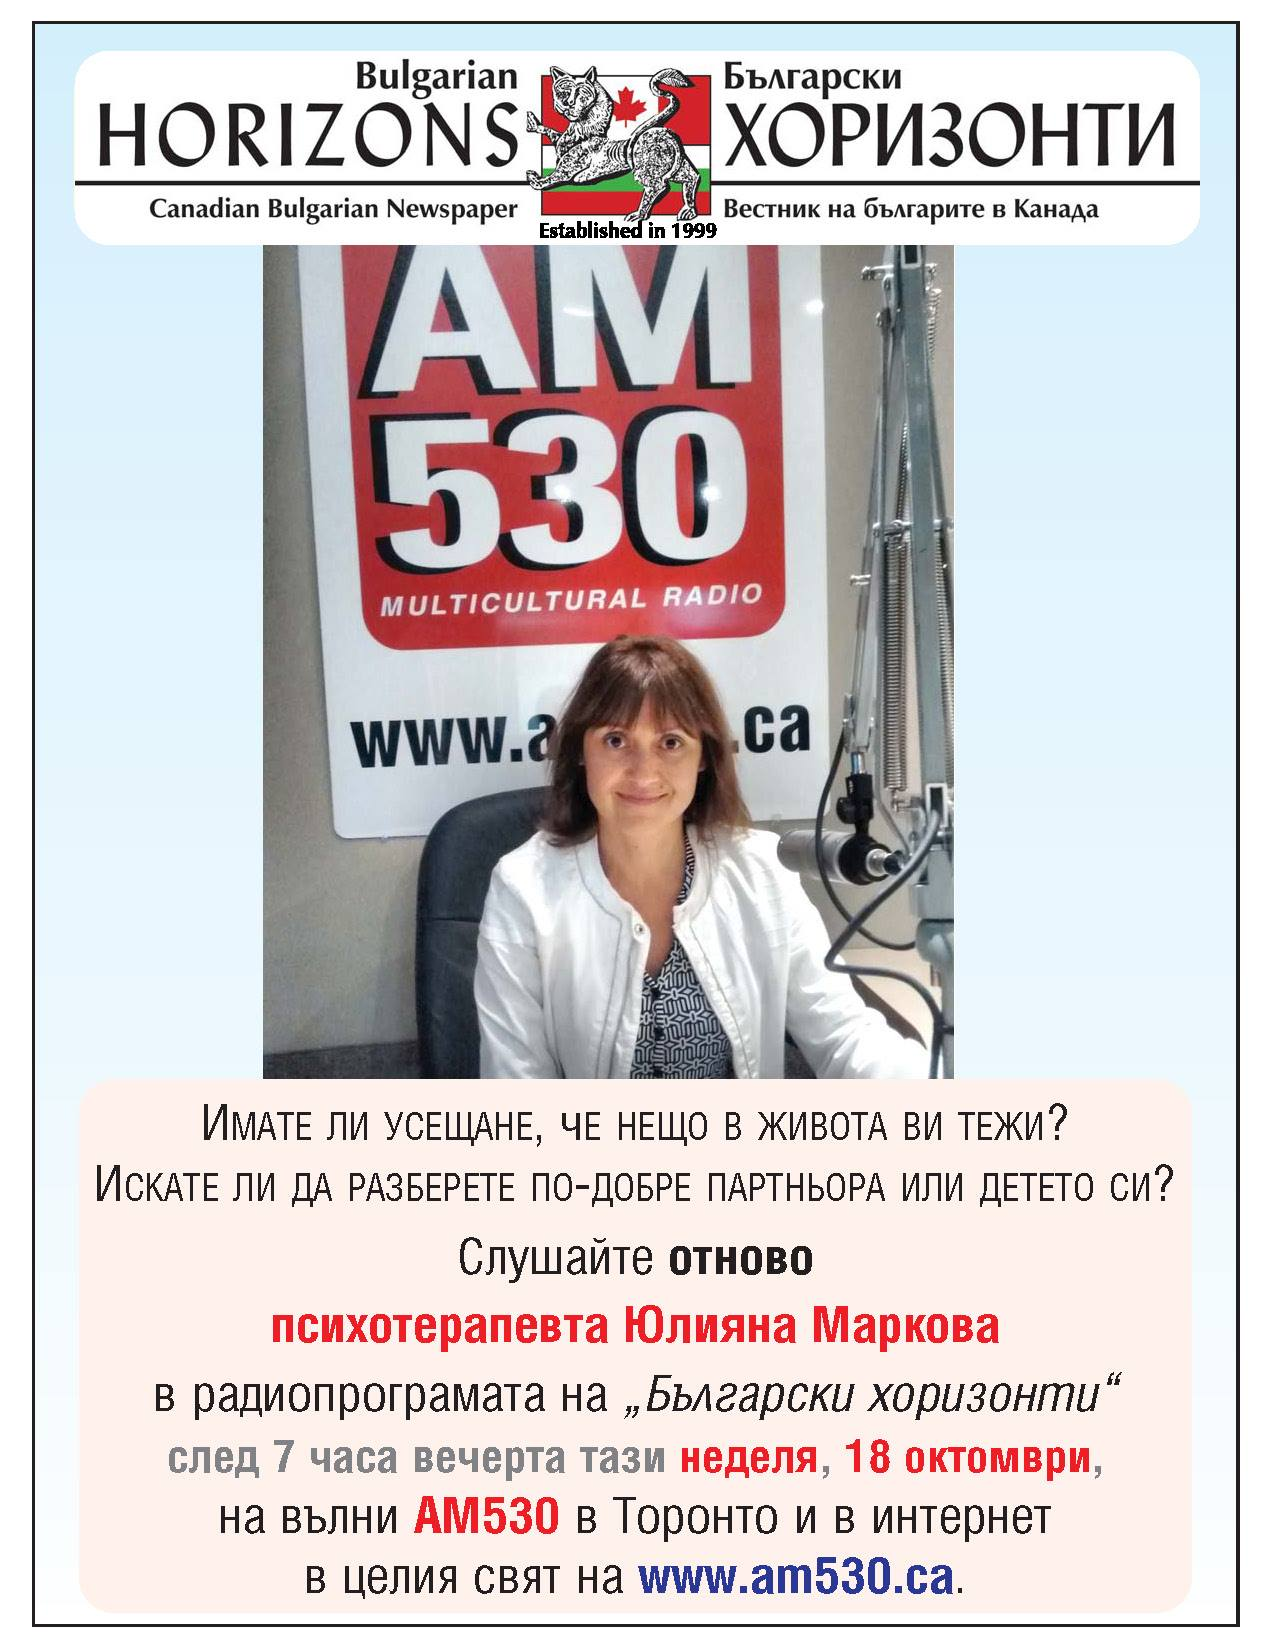 Uliyana Markova on radio with Bulgarian Horizons